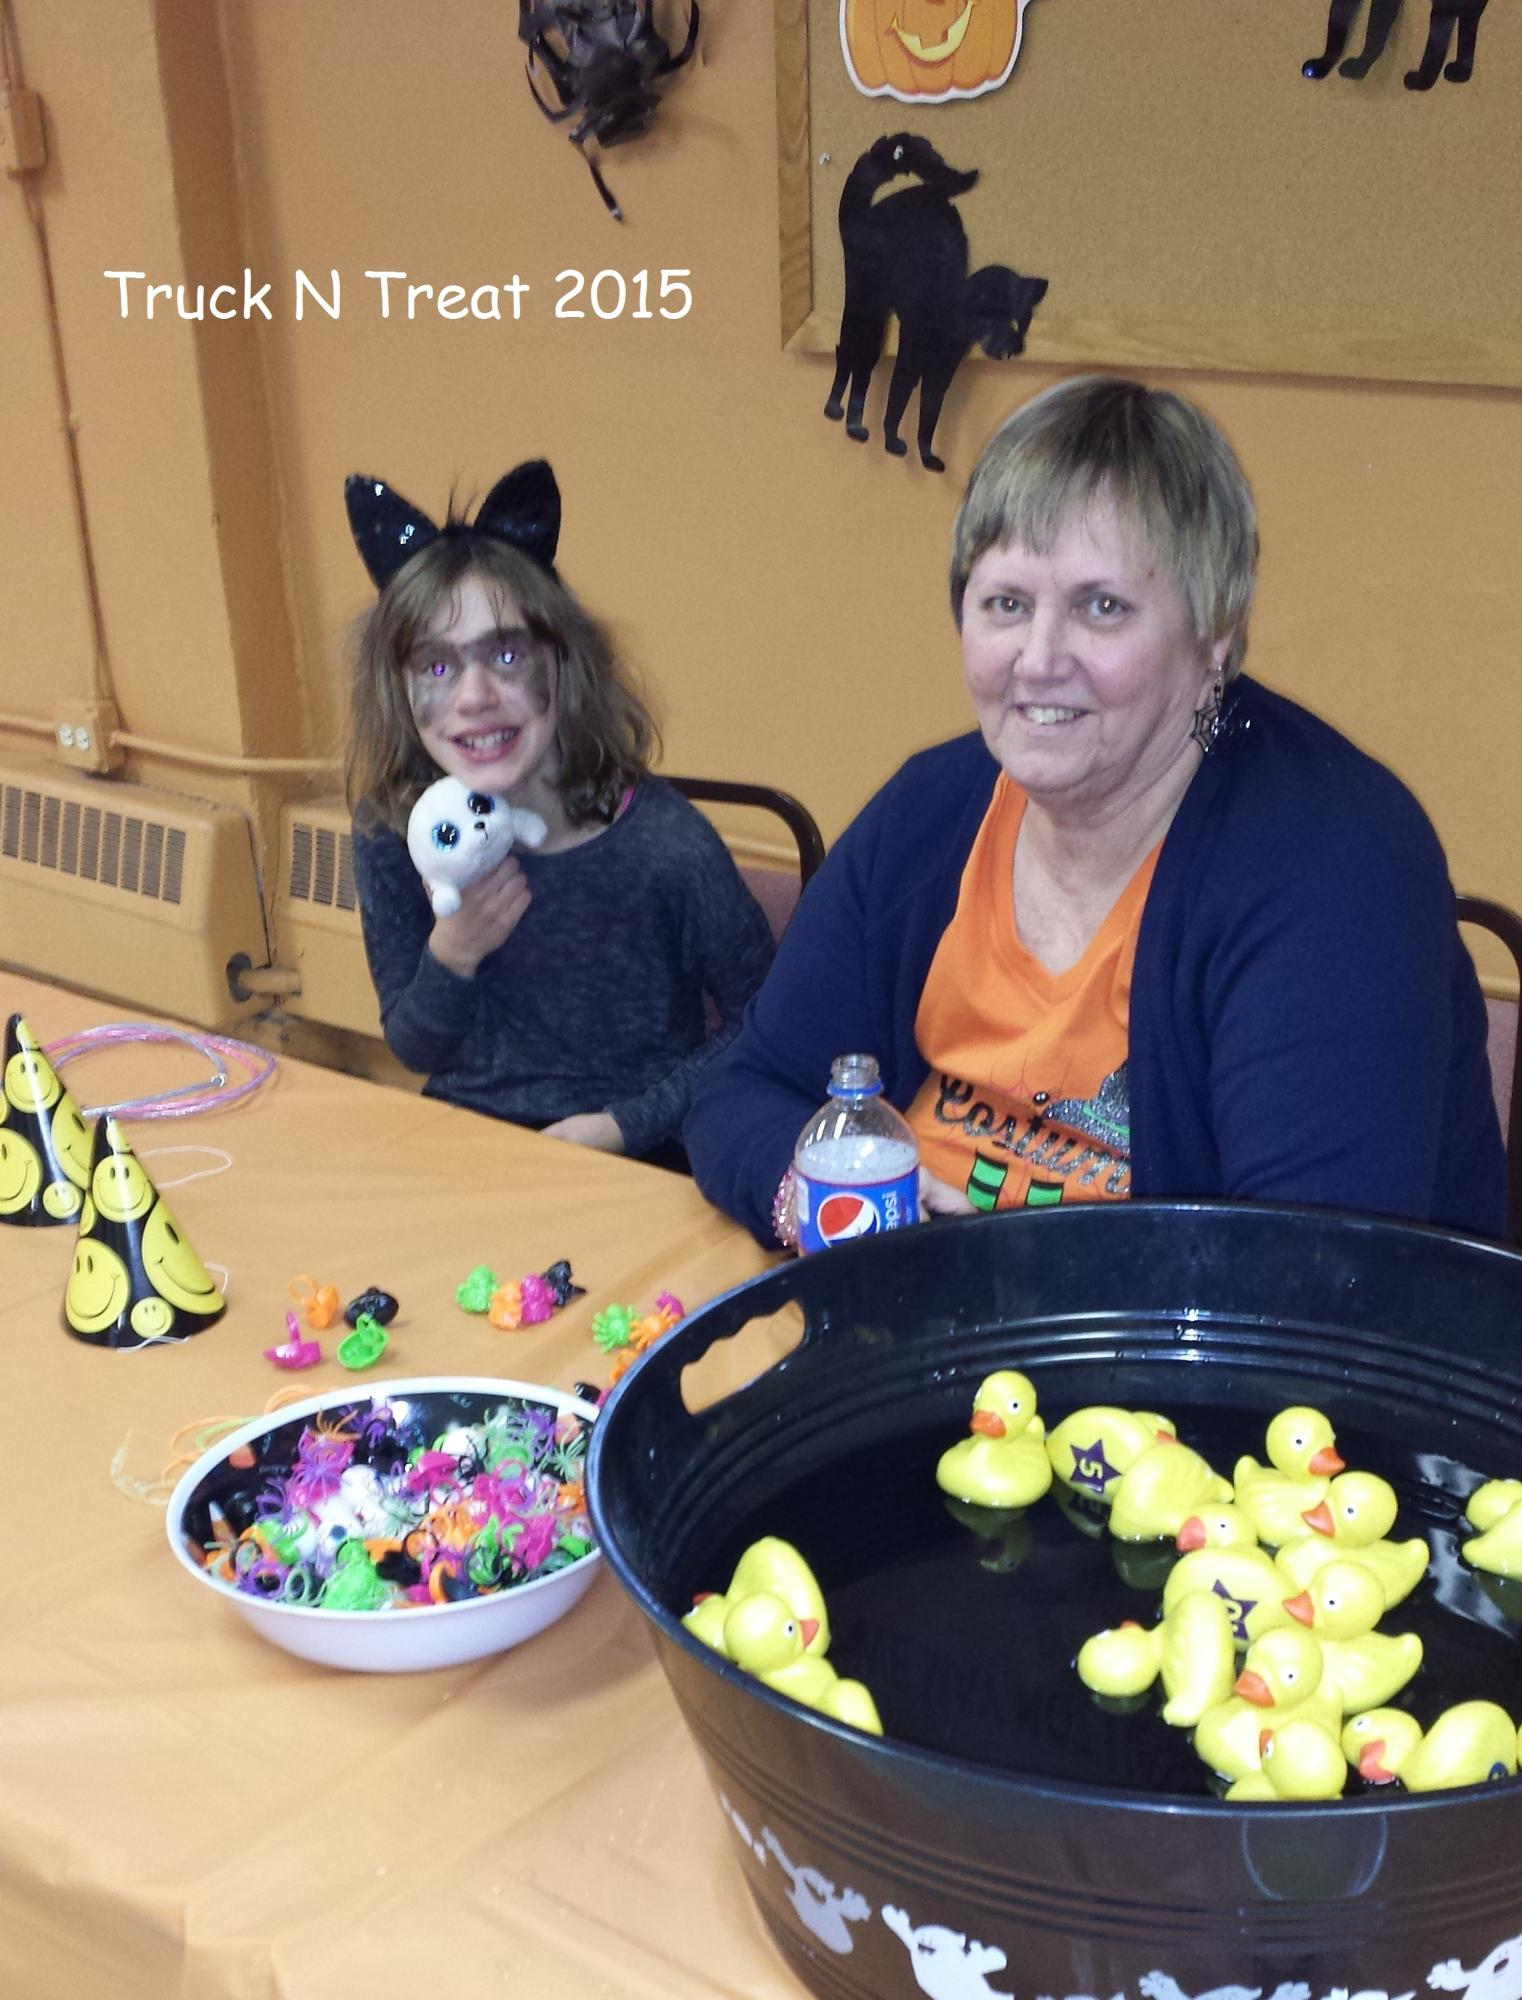 Trunk N Treat 2015